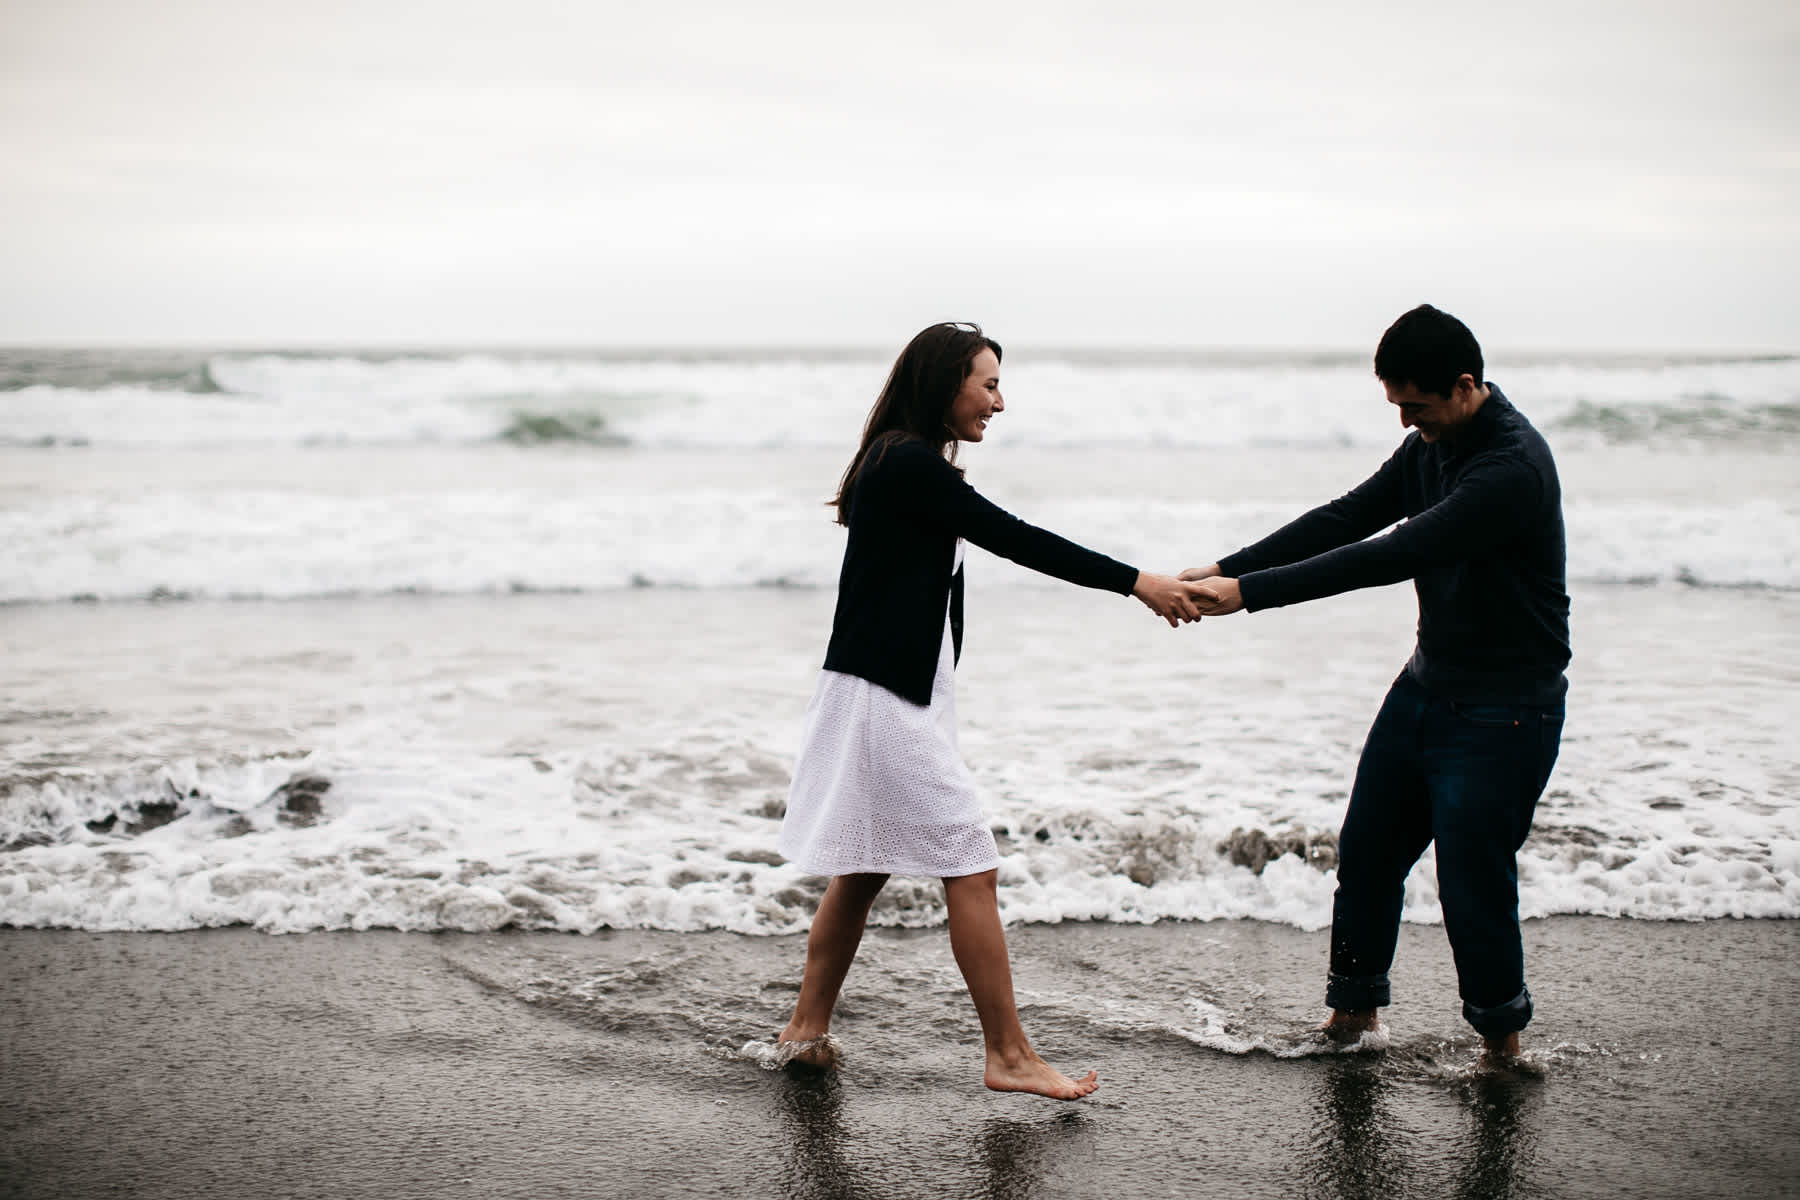 fort-funston-foggy-fun-beach-water-engagement-session-49